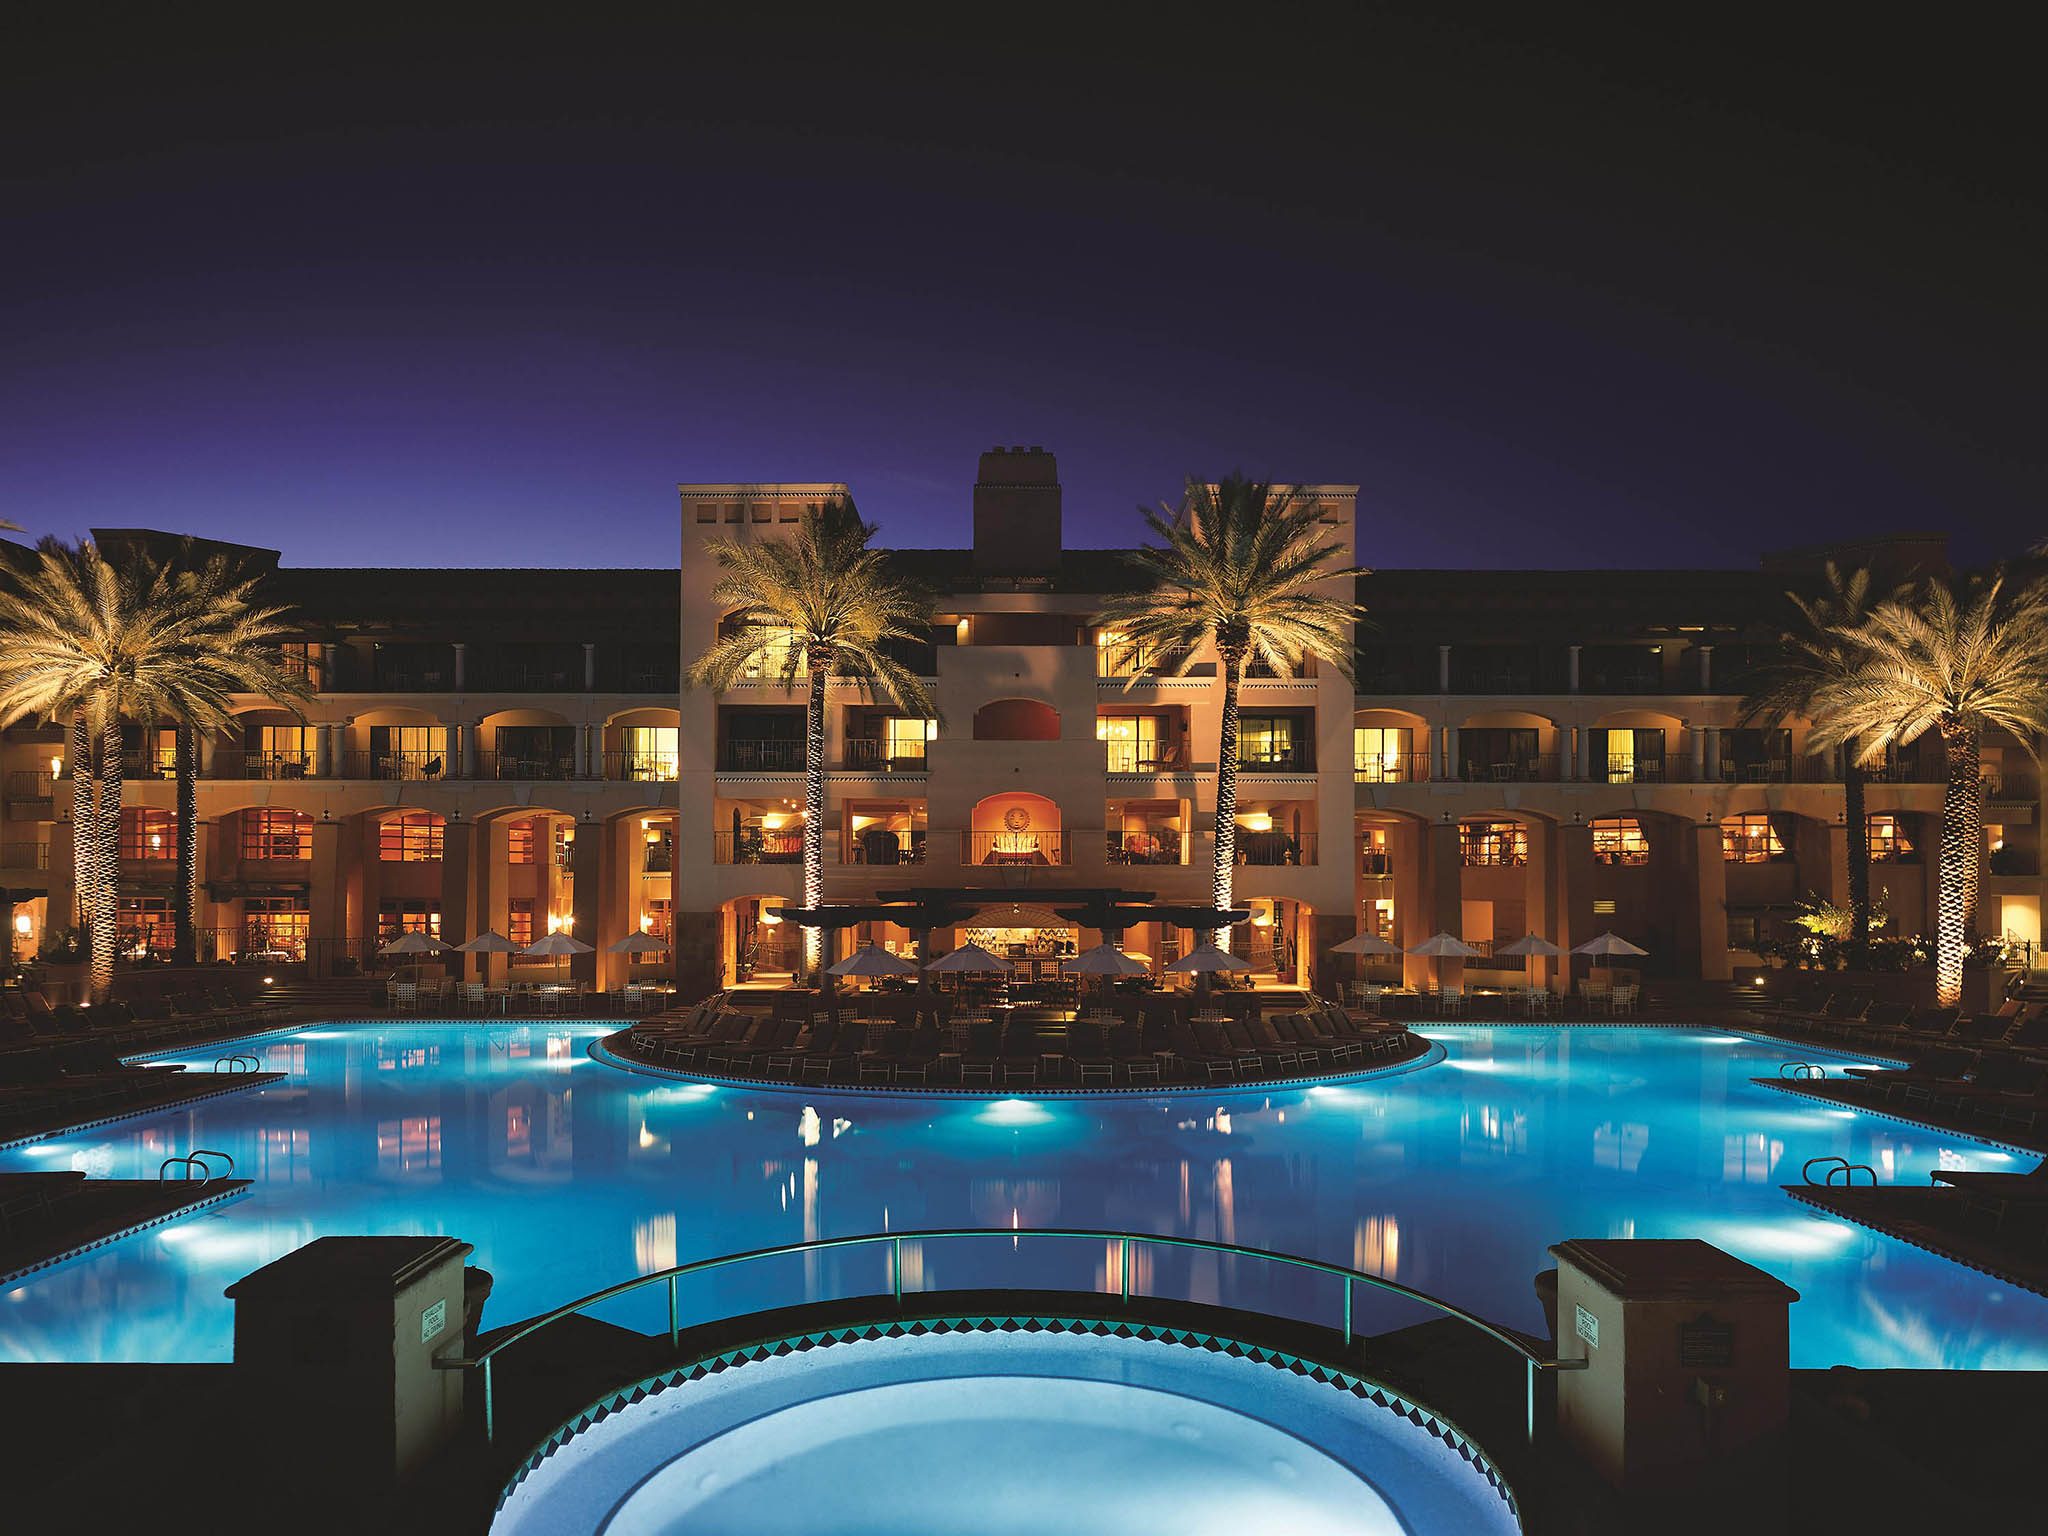 โรงแรม – Fairmont Scottsdale Princess